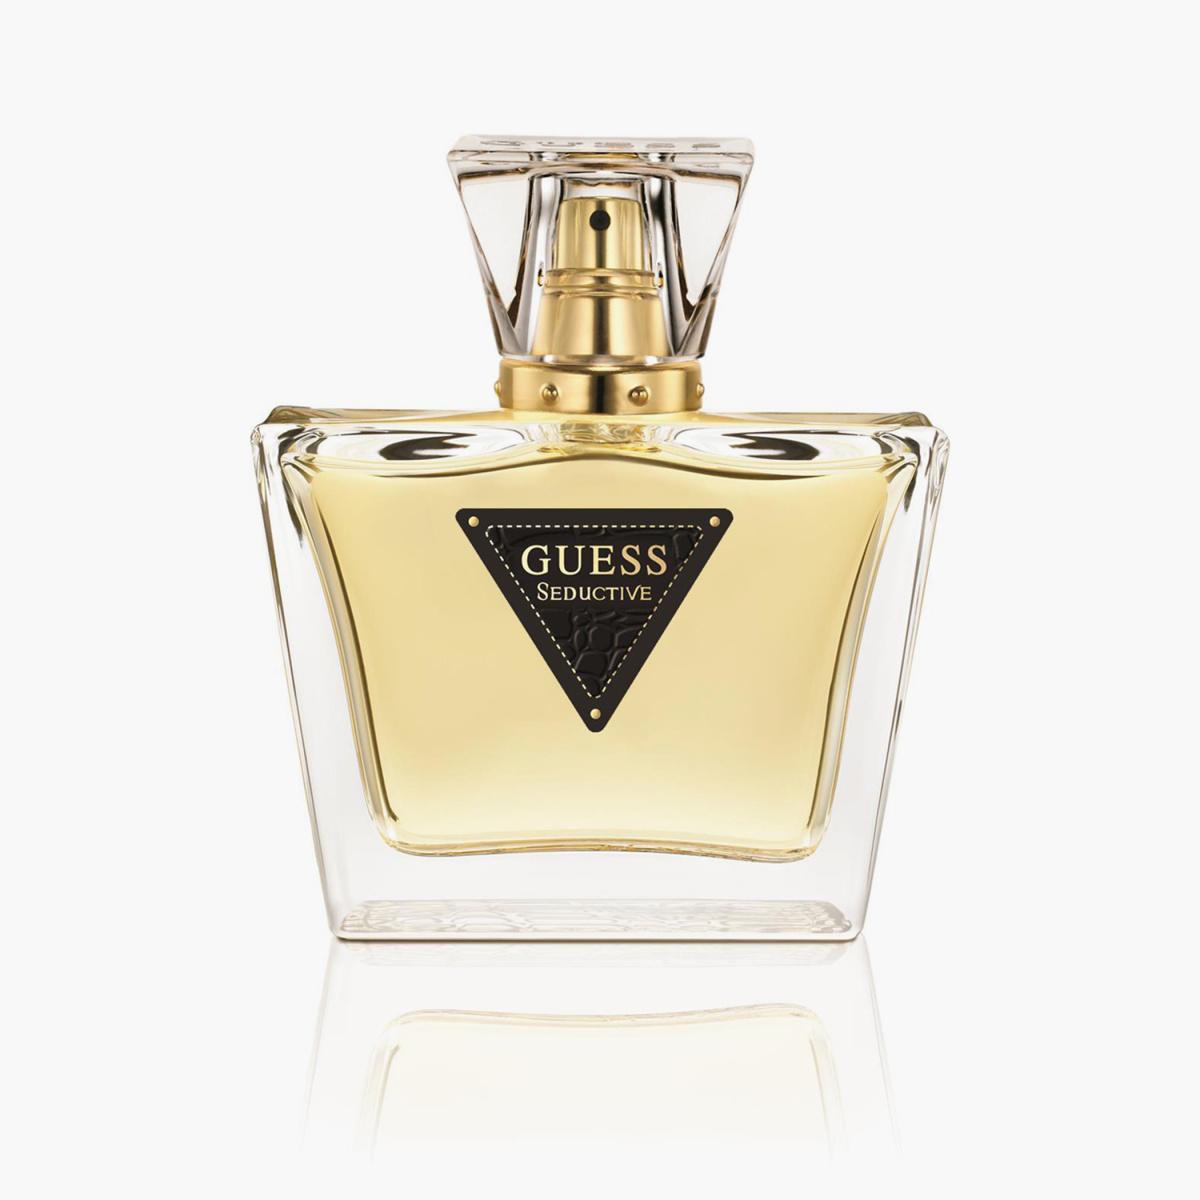 GUESS Women Seductive Eau De Toilette